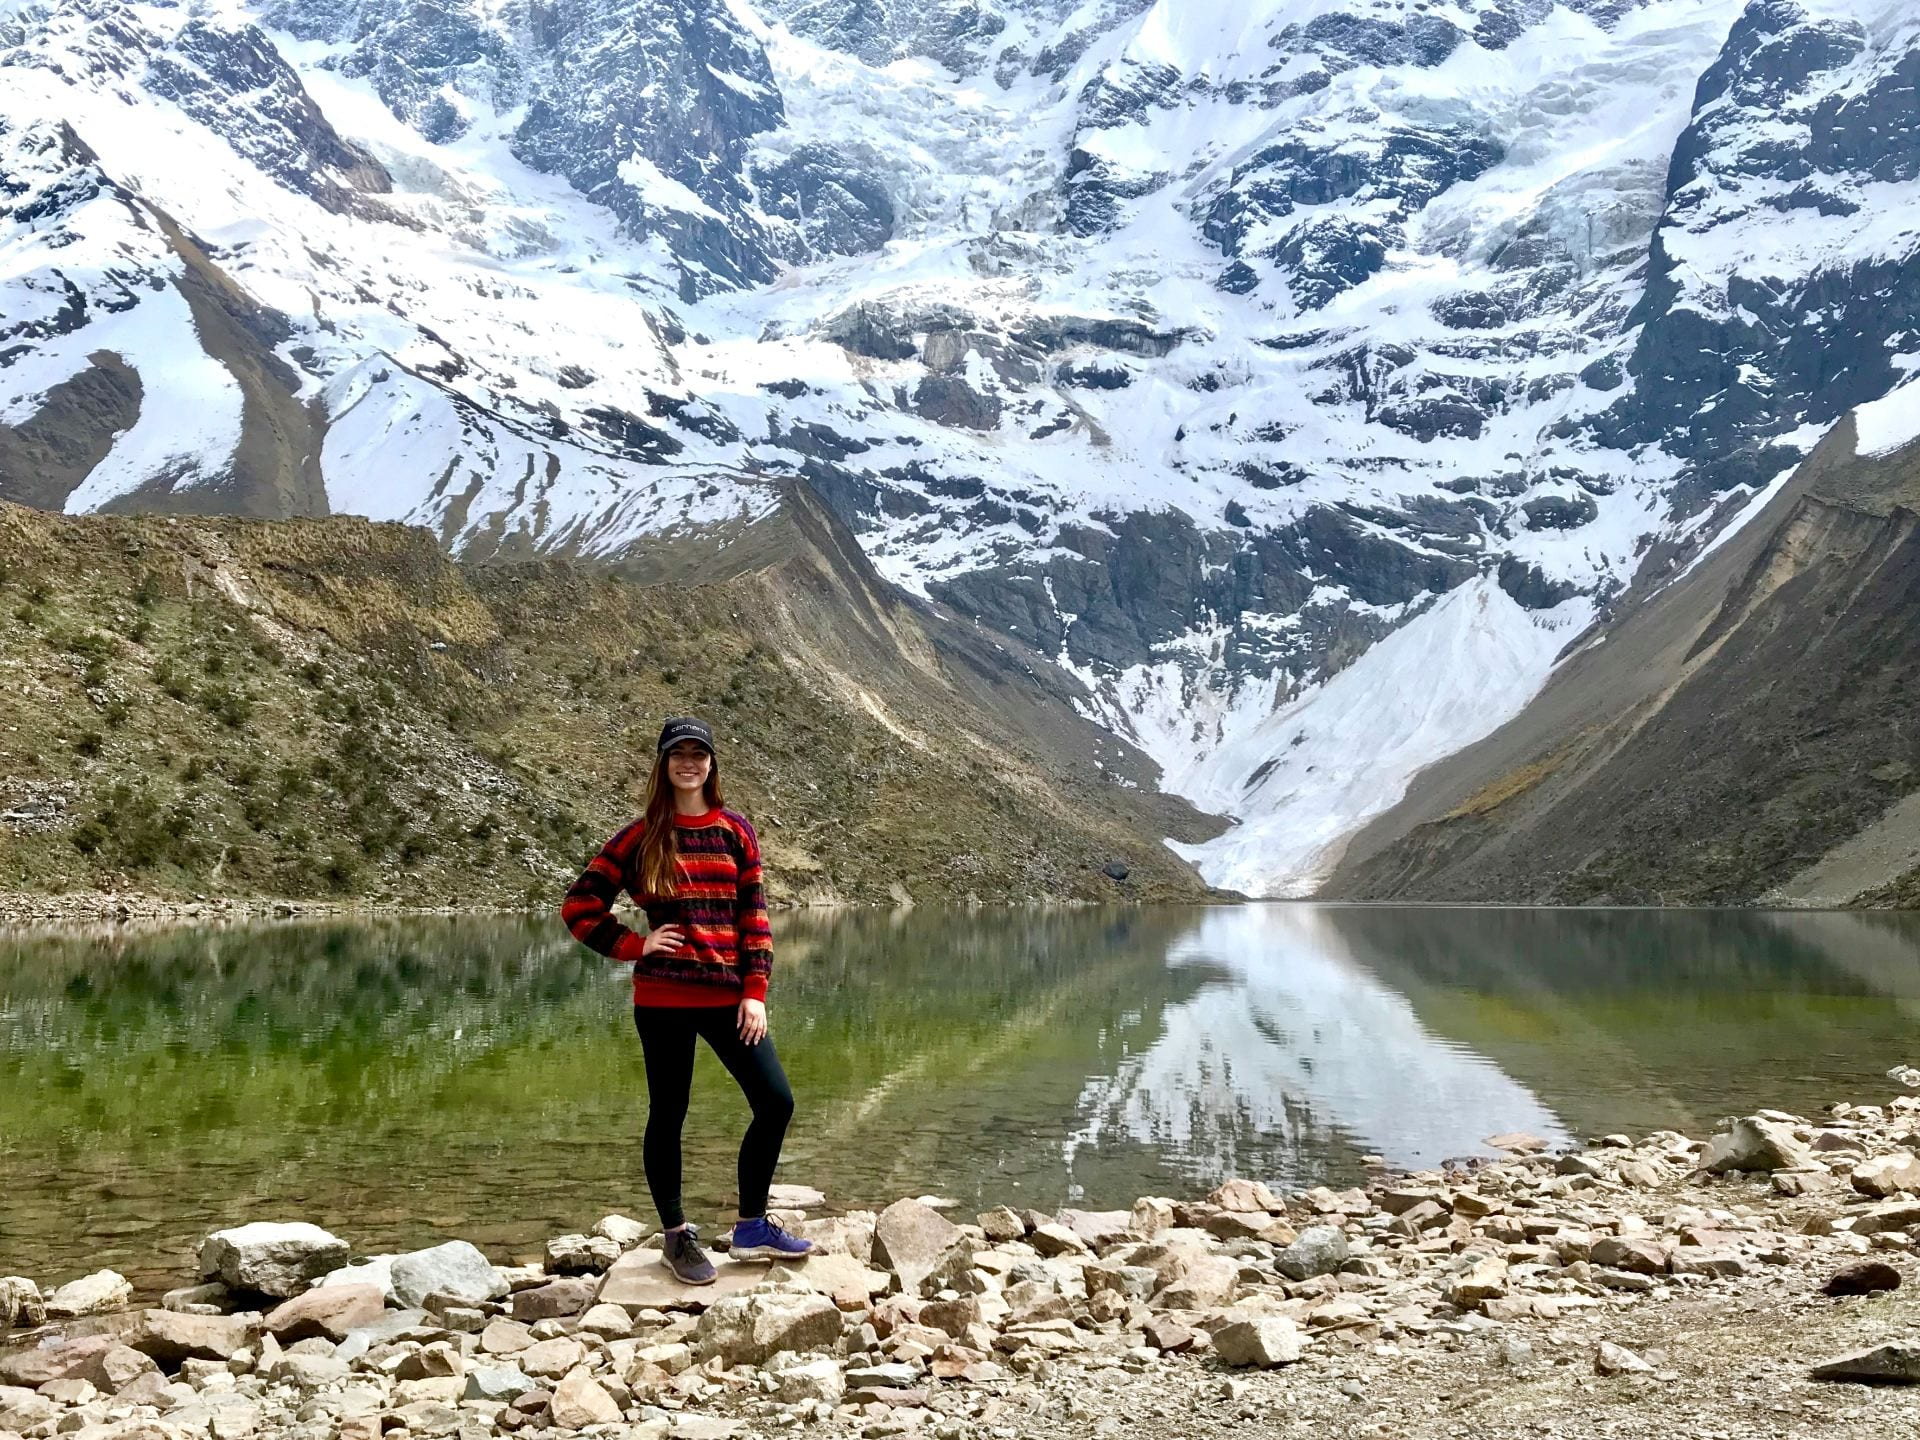 A woman posing in front of a snowy mountain, reflected in a lake